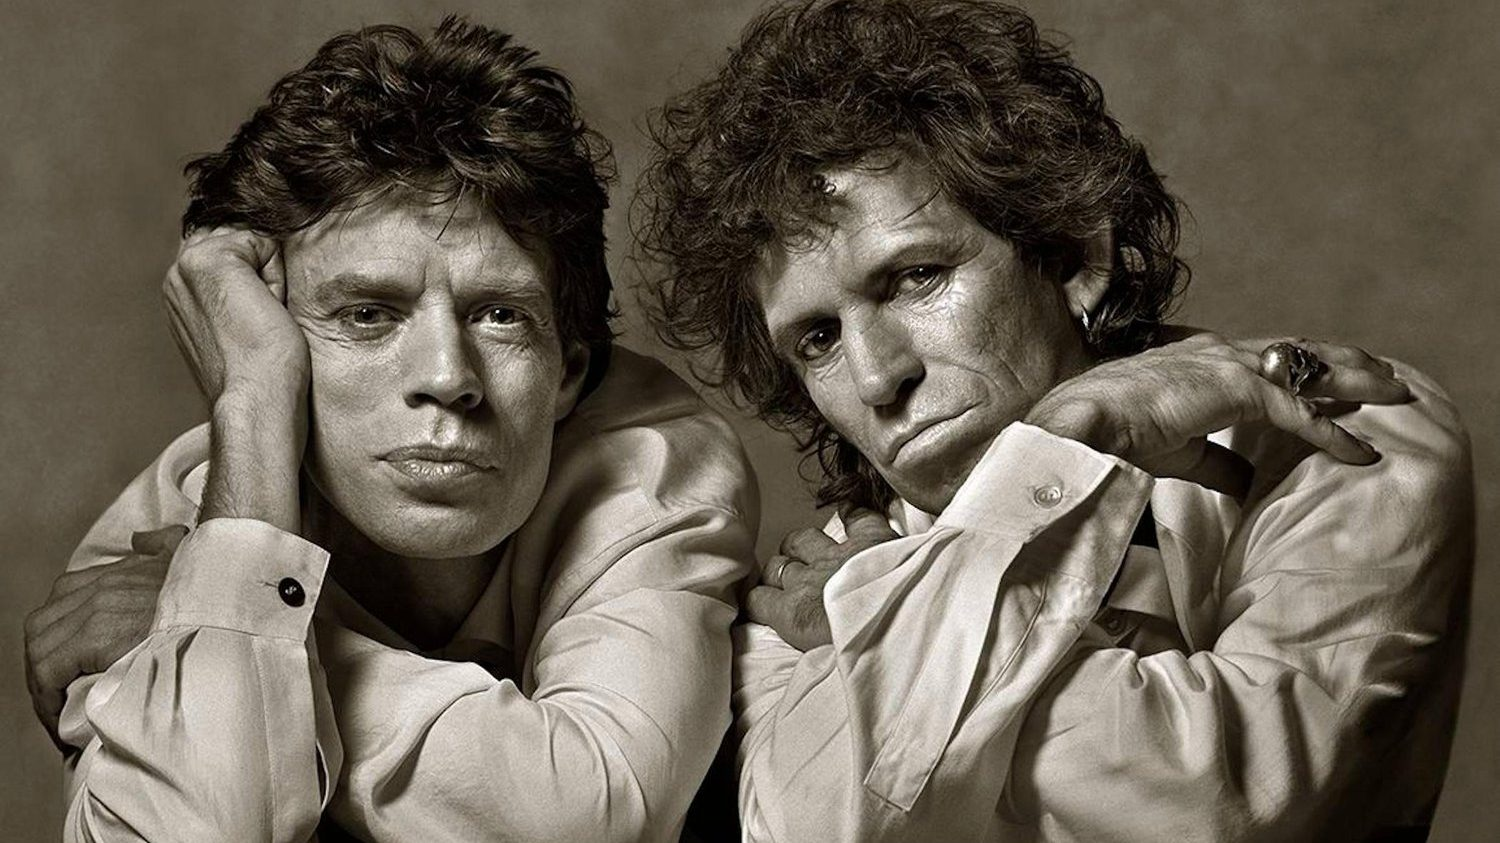 Mick_Jagger_&_Keith_Richards_of_the_Rolling_Stones